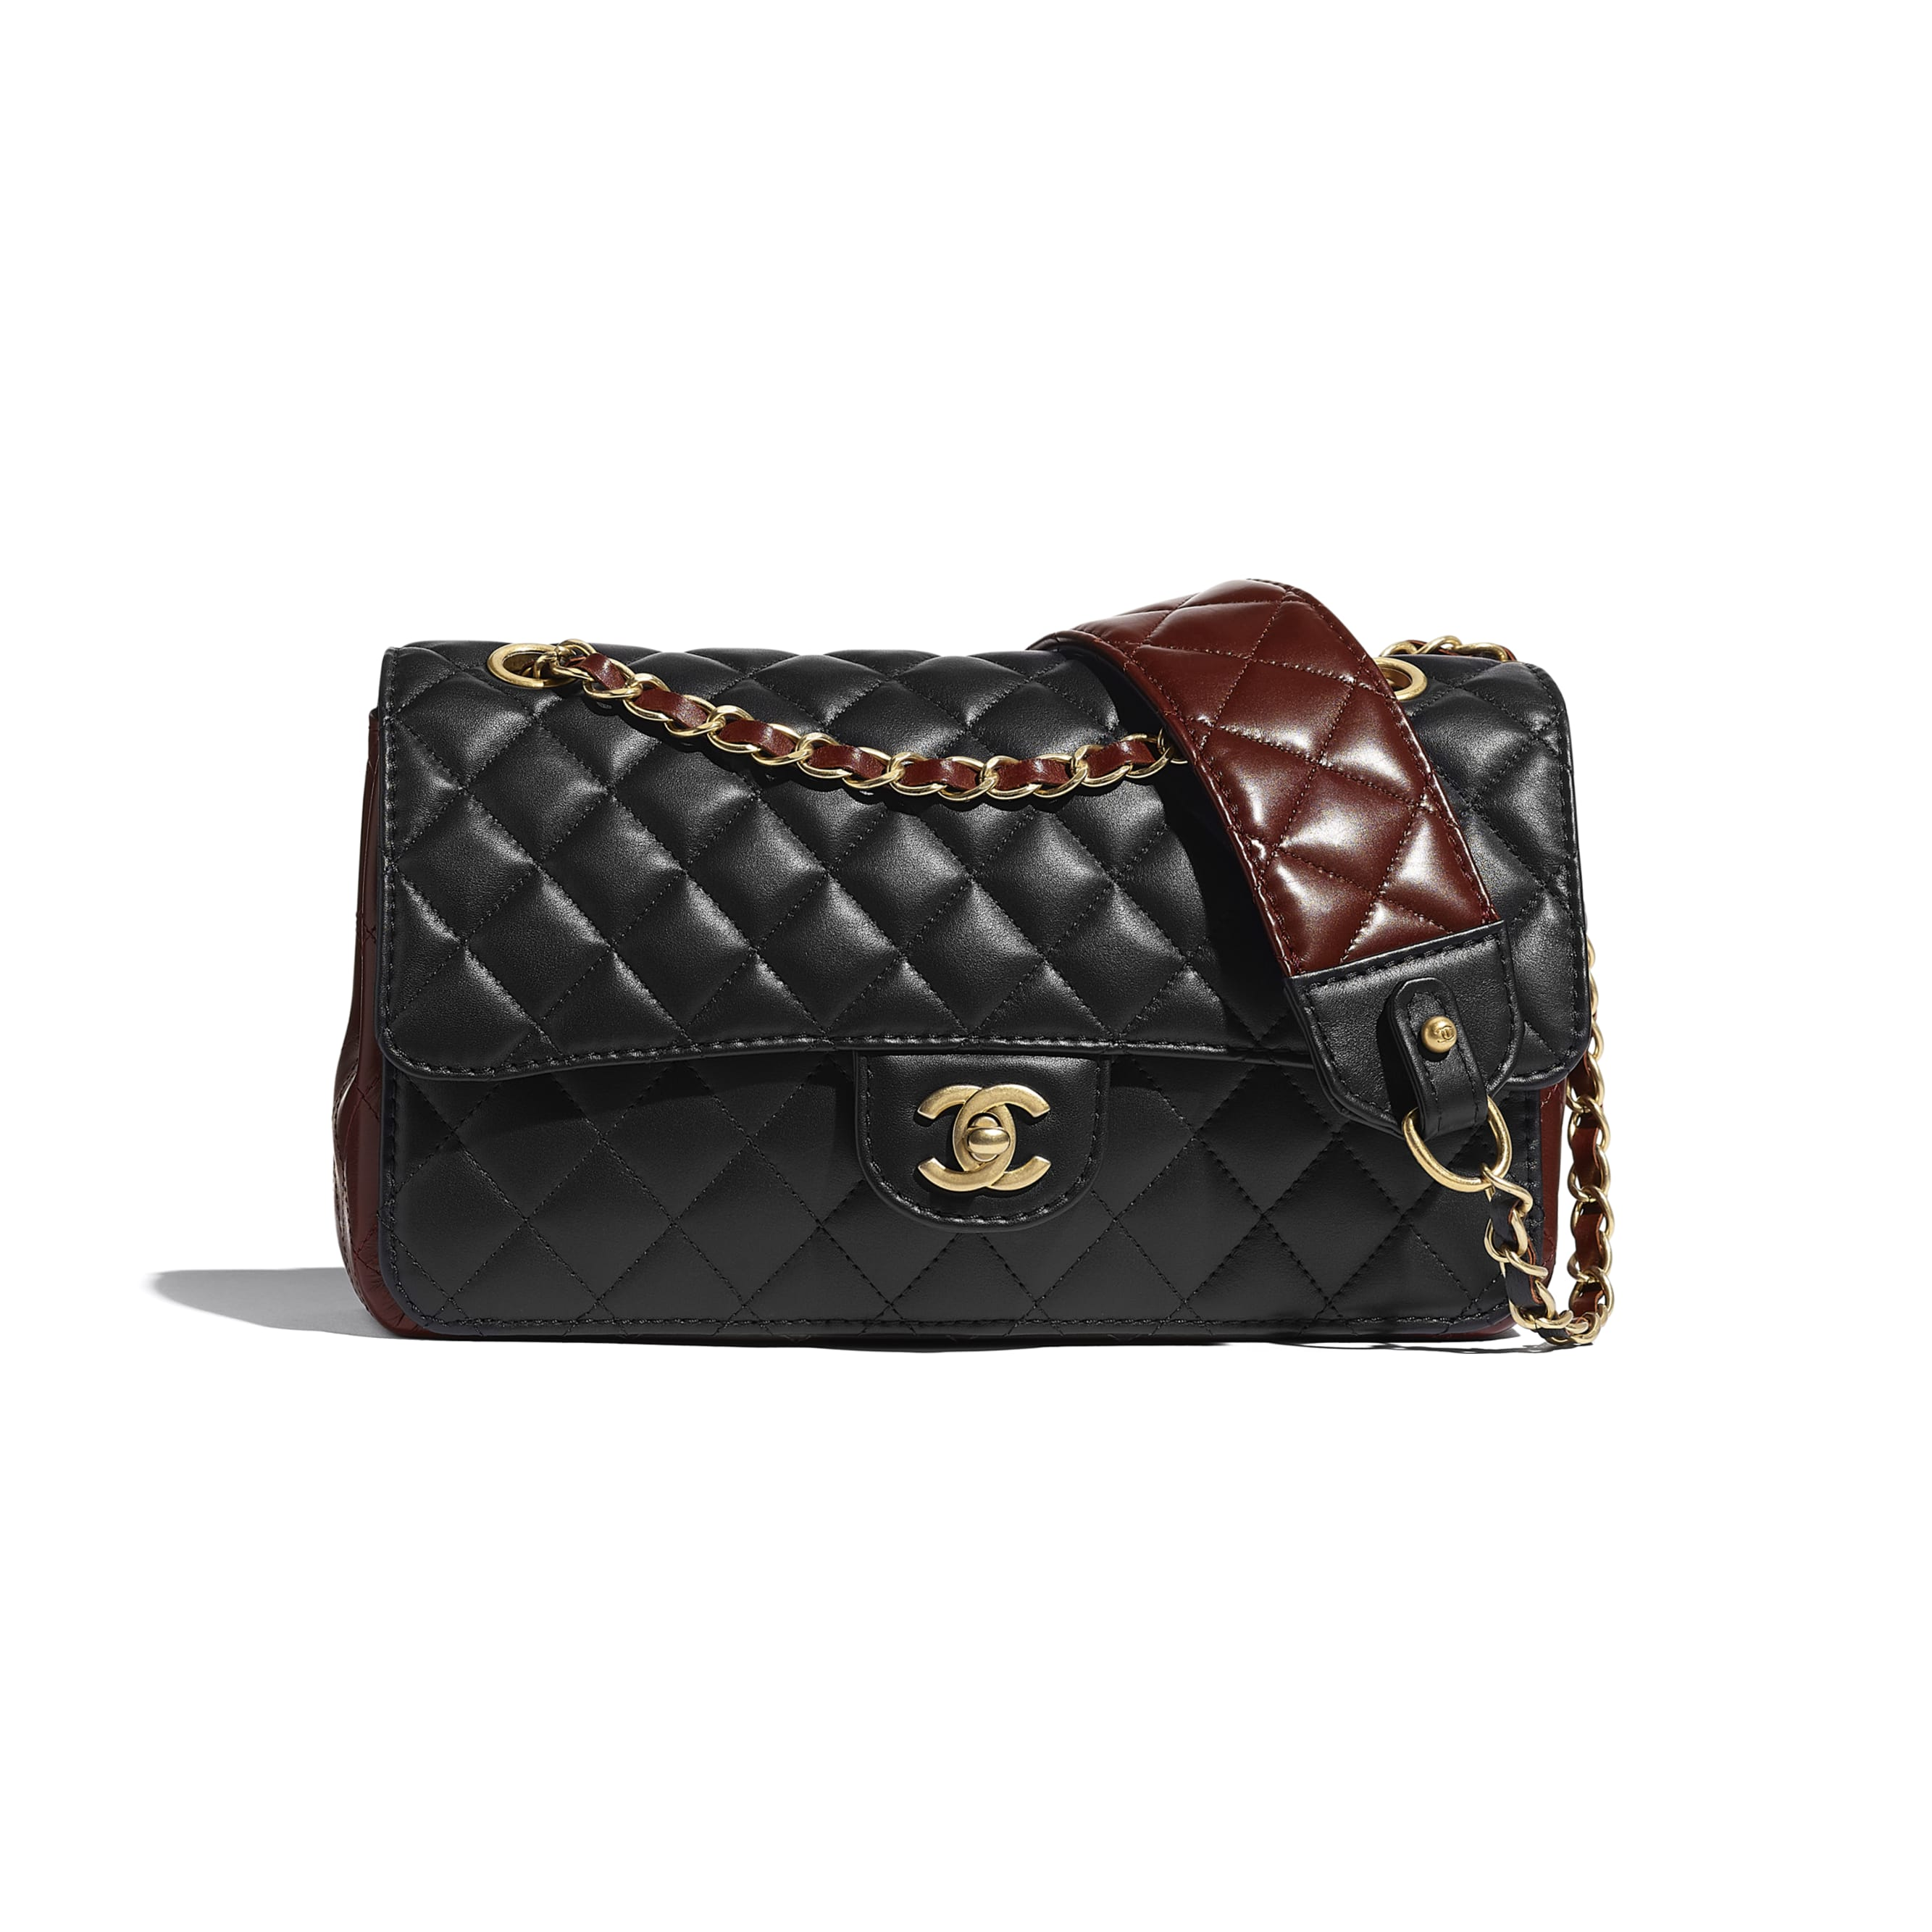 Flap Bag - Black & Brown - Calfskin & Gold-Tone Metal - CHANEL - Default view - see standard sized version